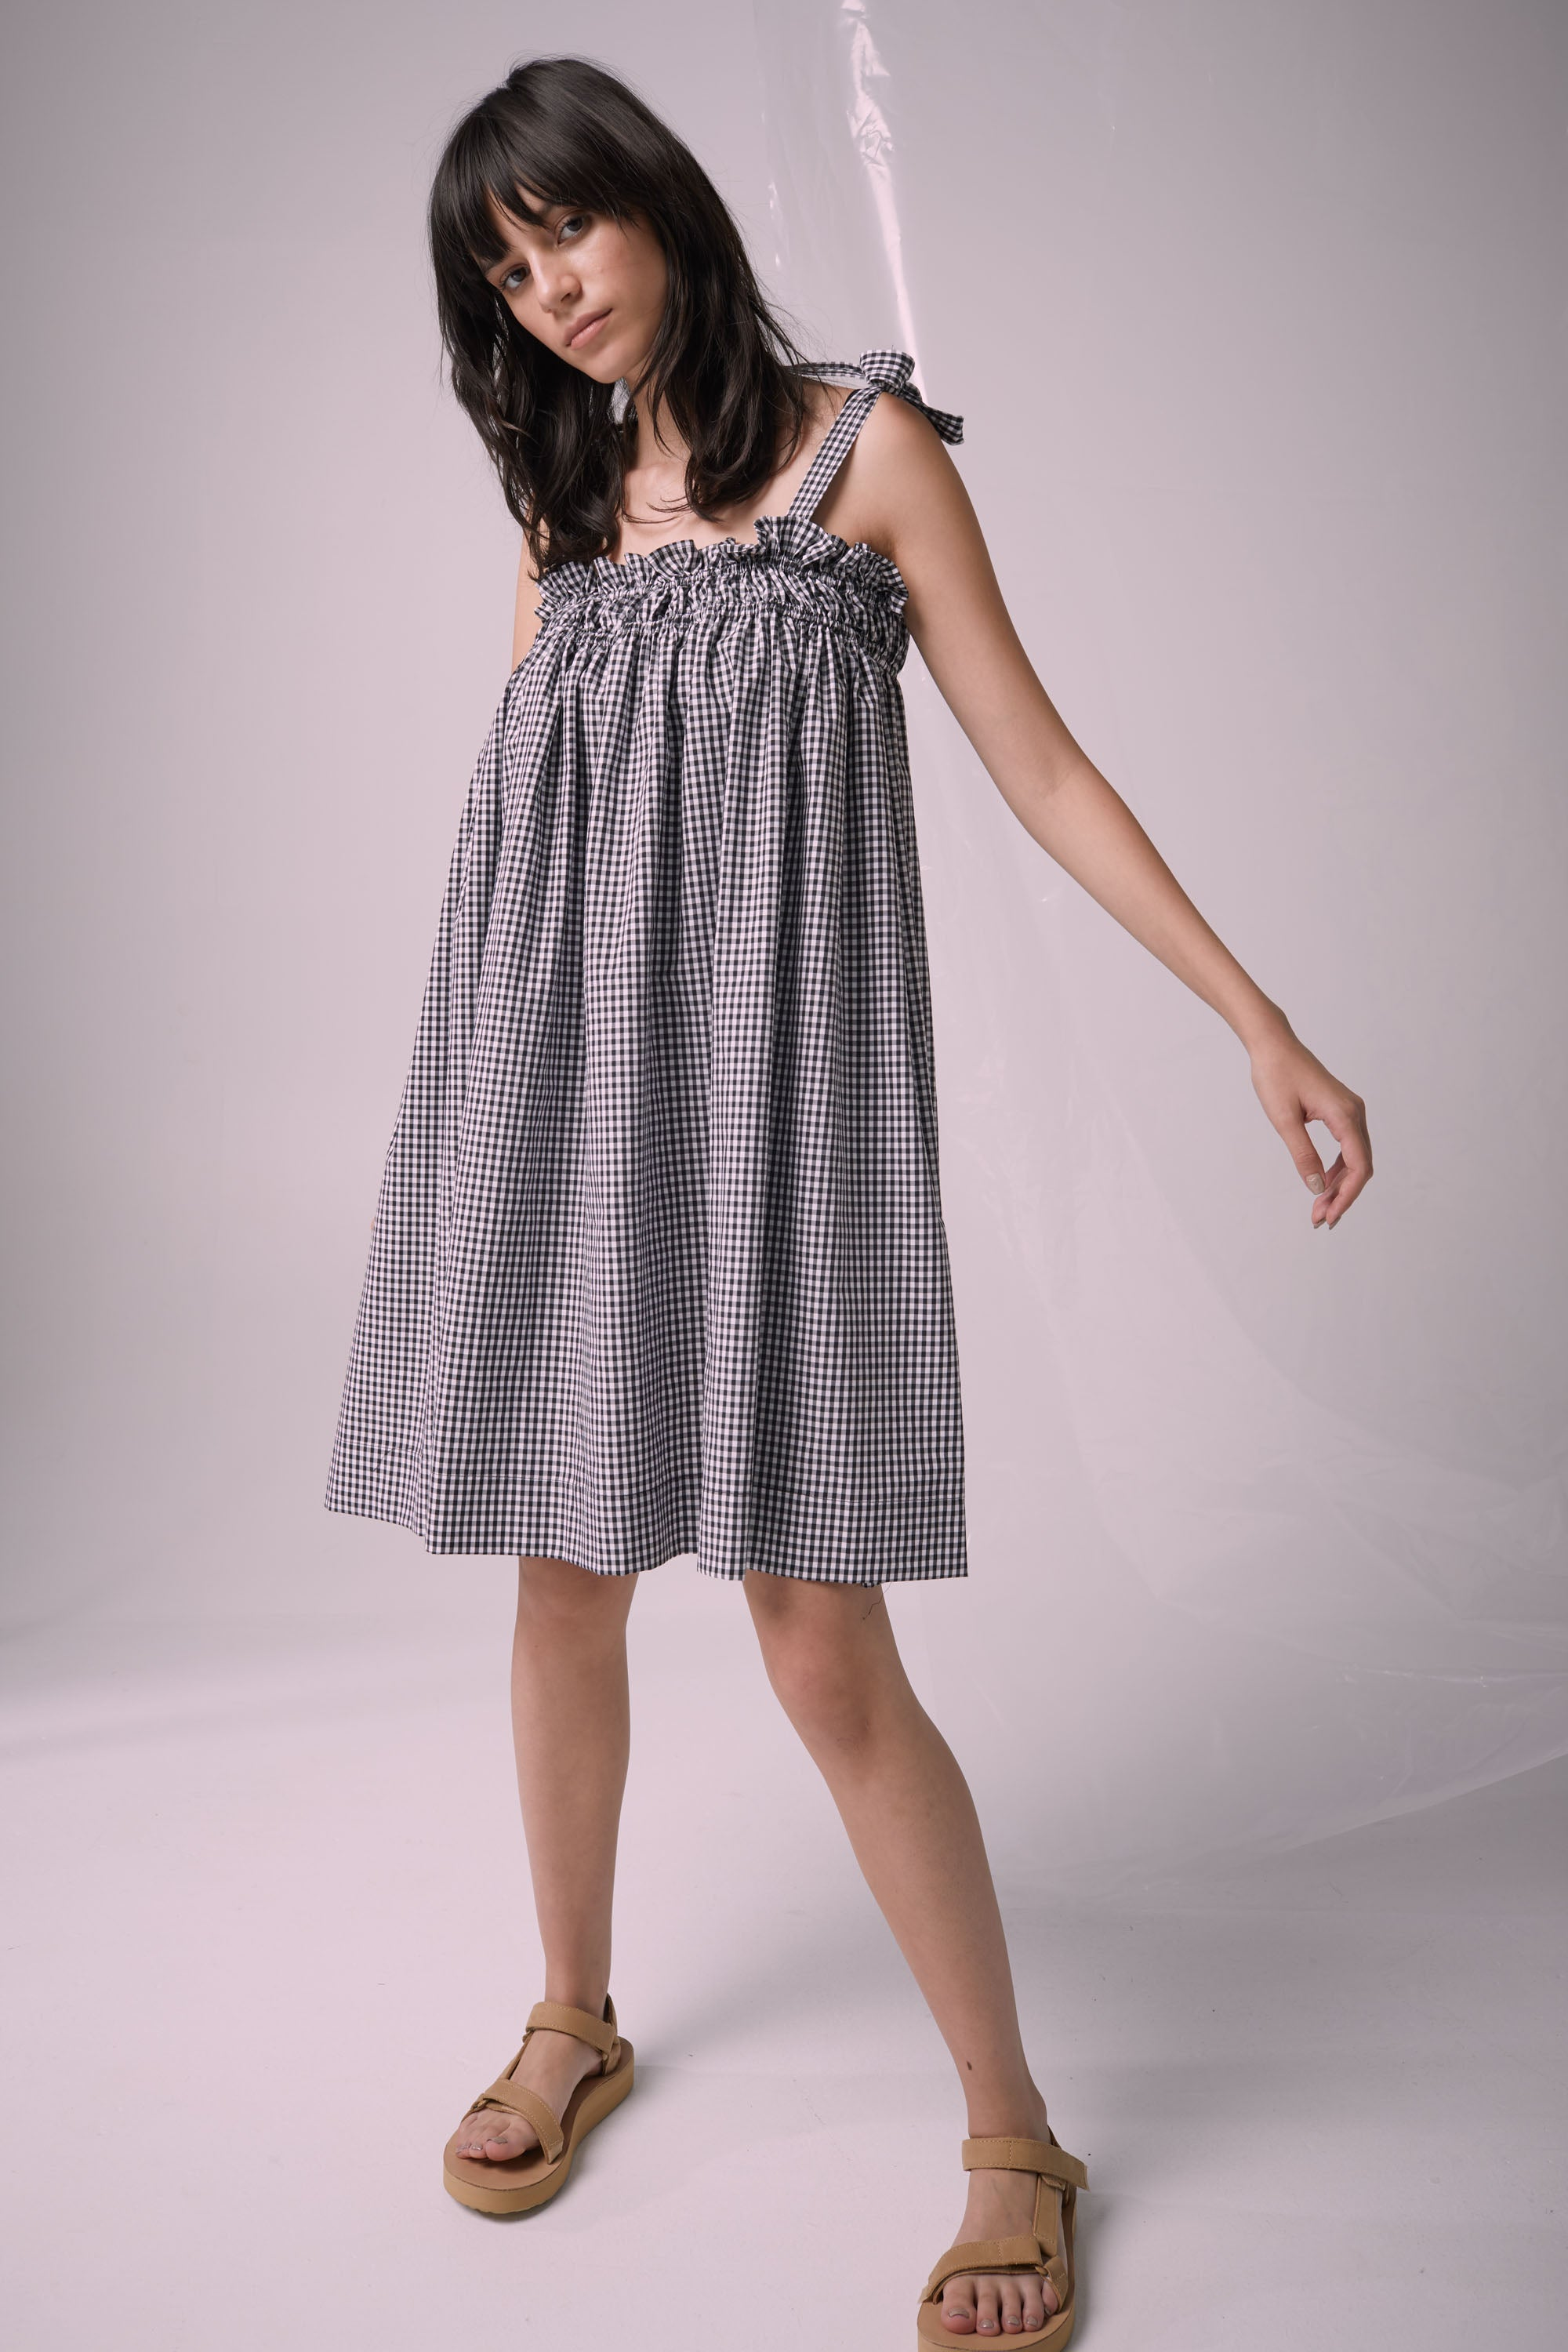 Ricochet NZ Fashion Designer Clothing Boutique SS19  Made in NZ Sweet Dreams Dress Black/White Gingham